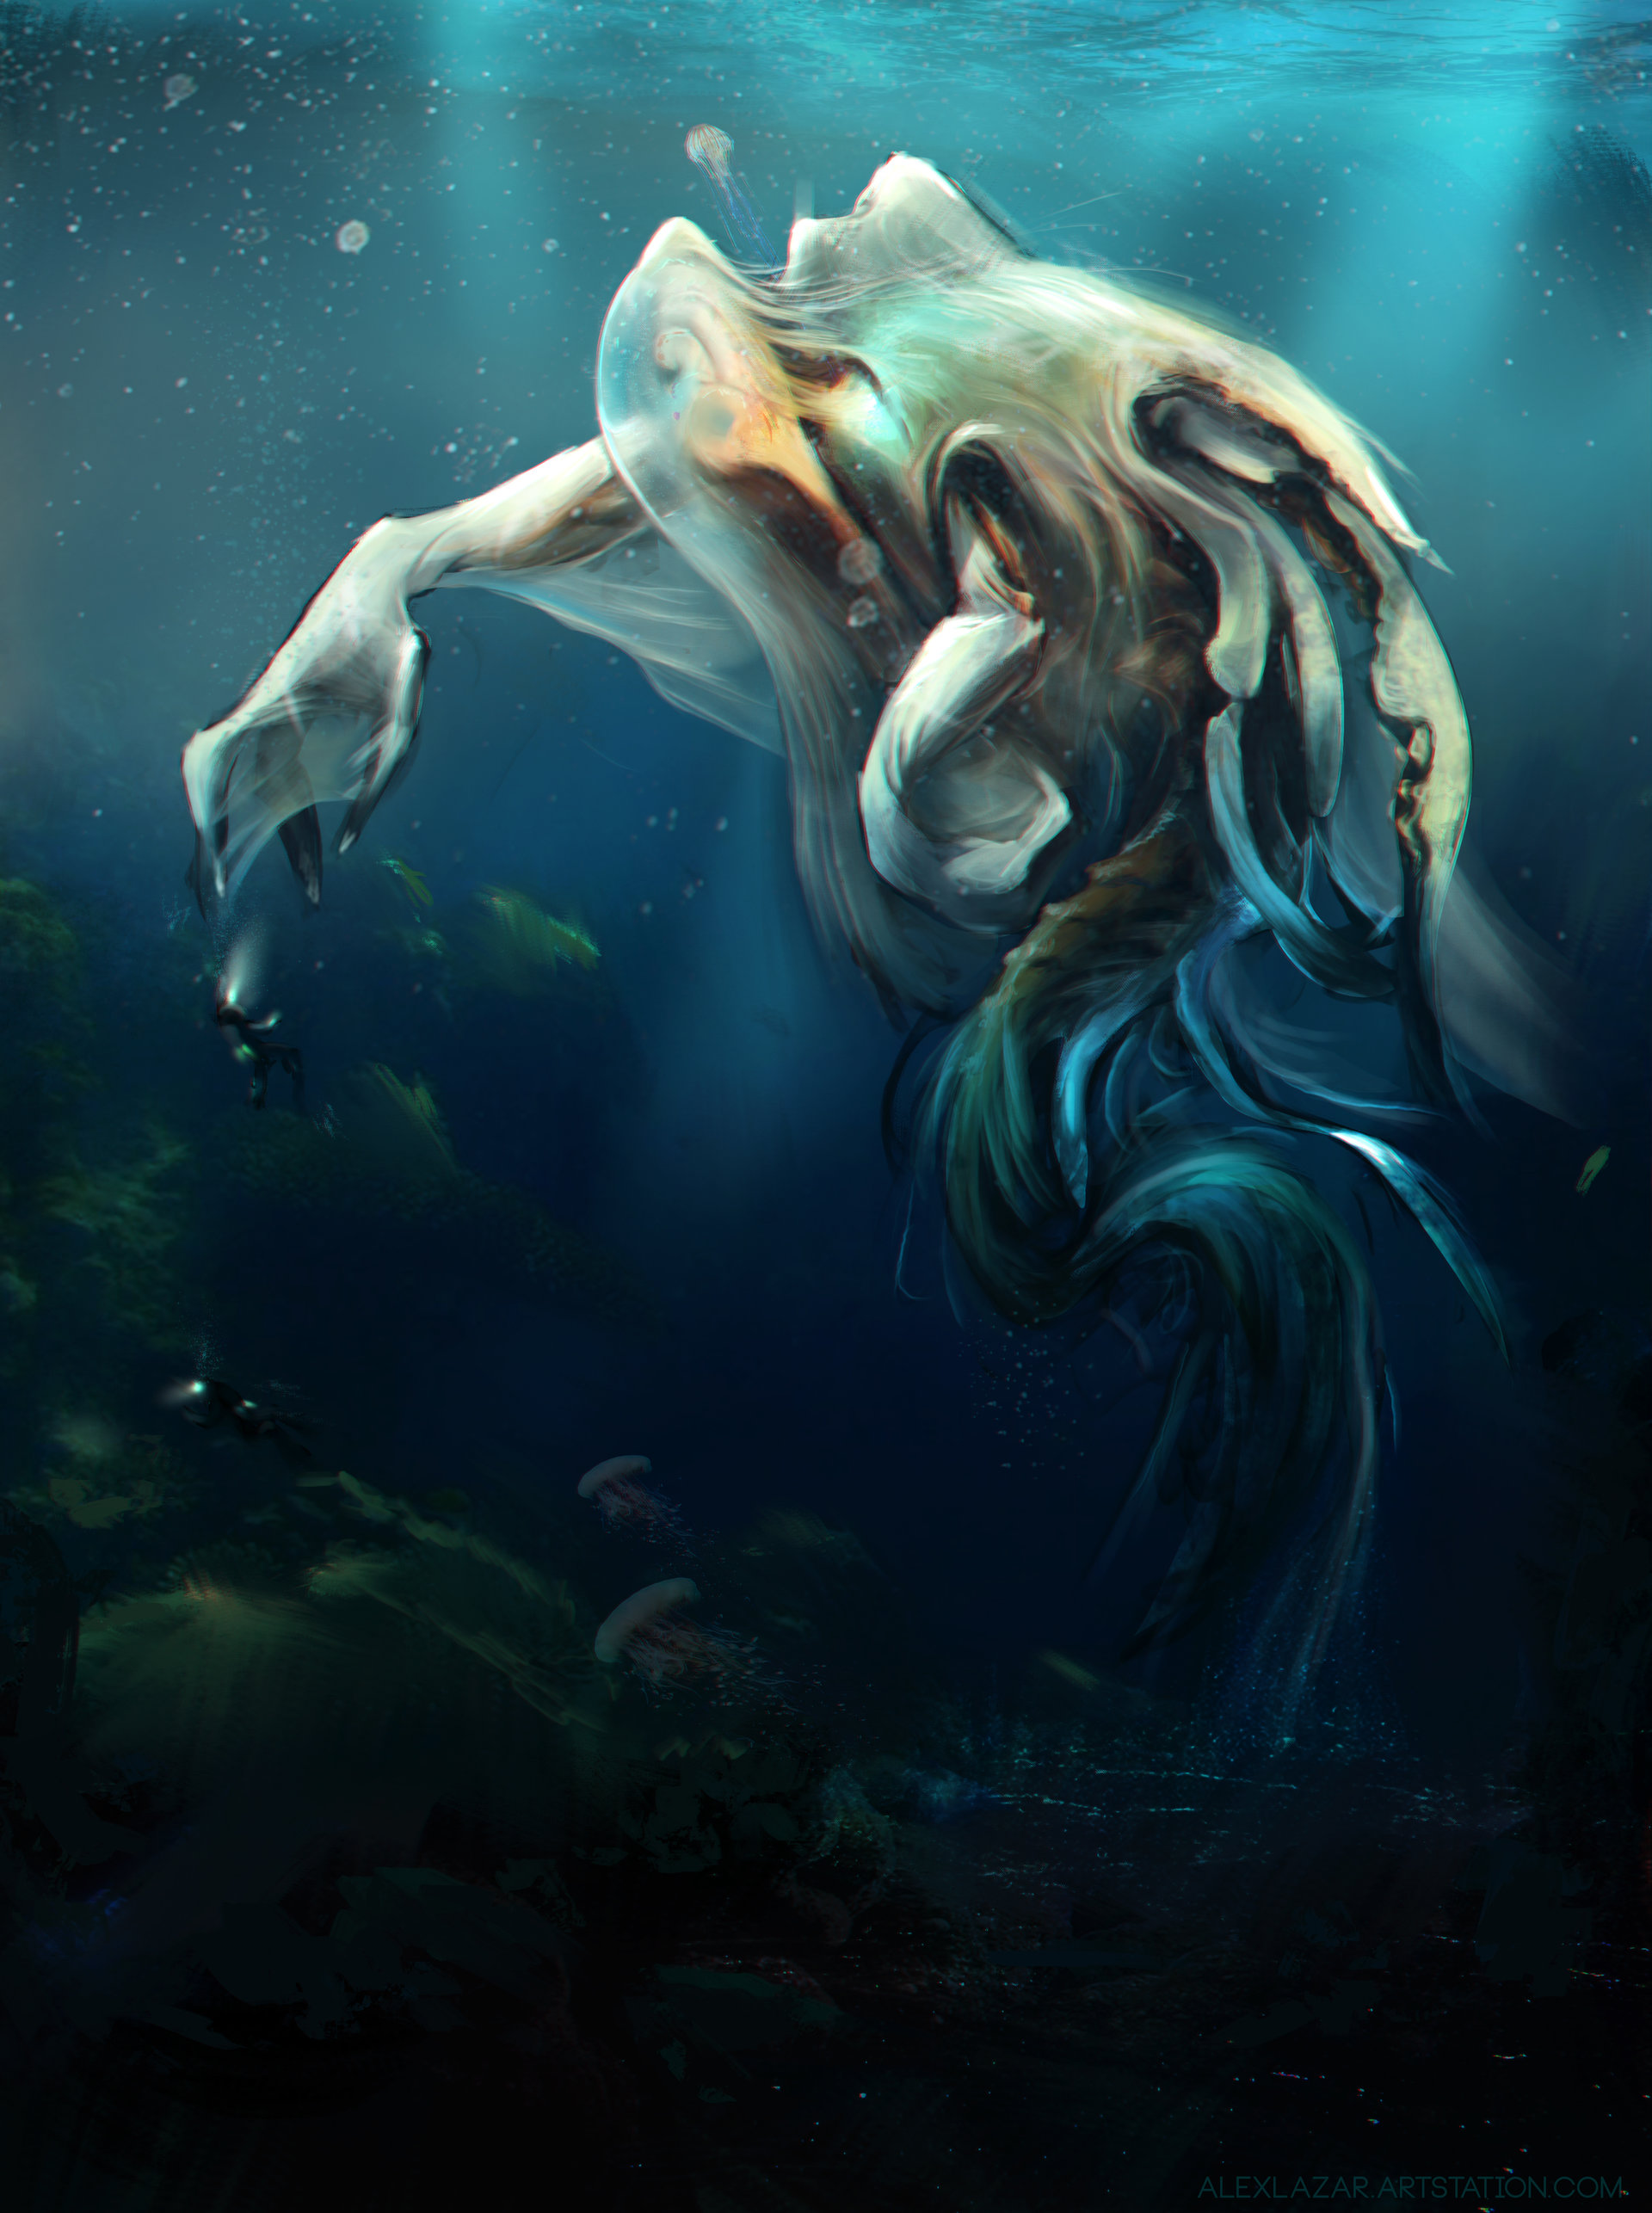 Alex lazar aquatic alien creature thing fin